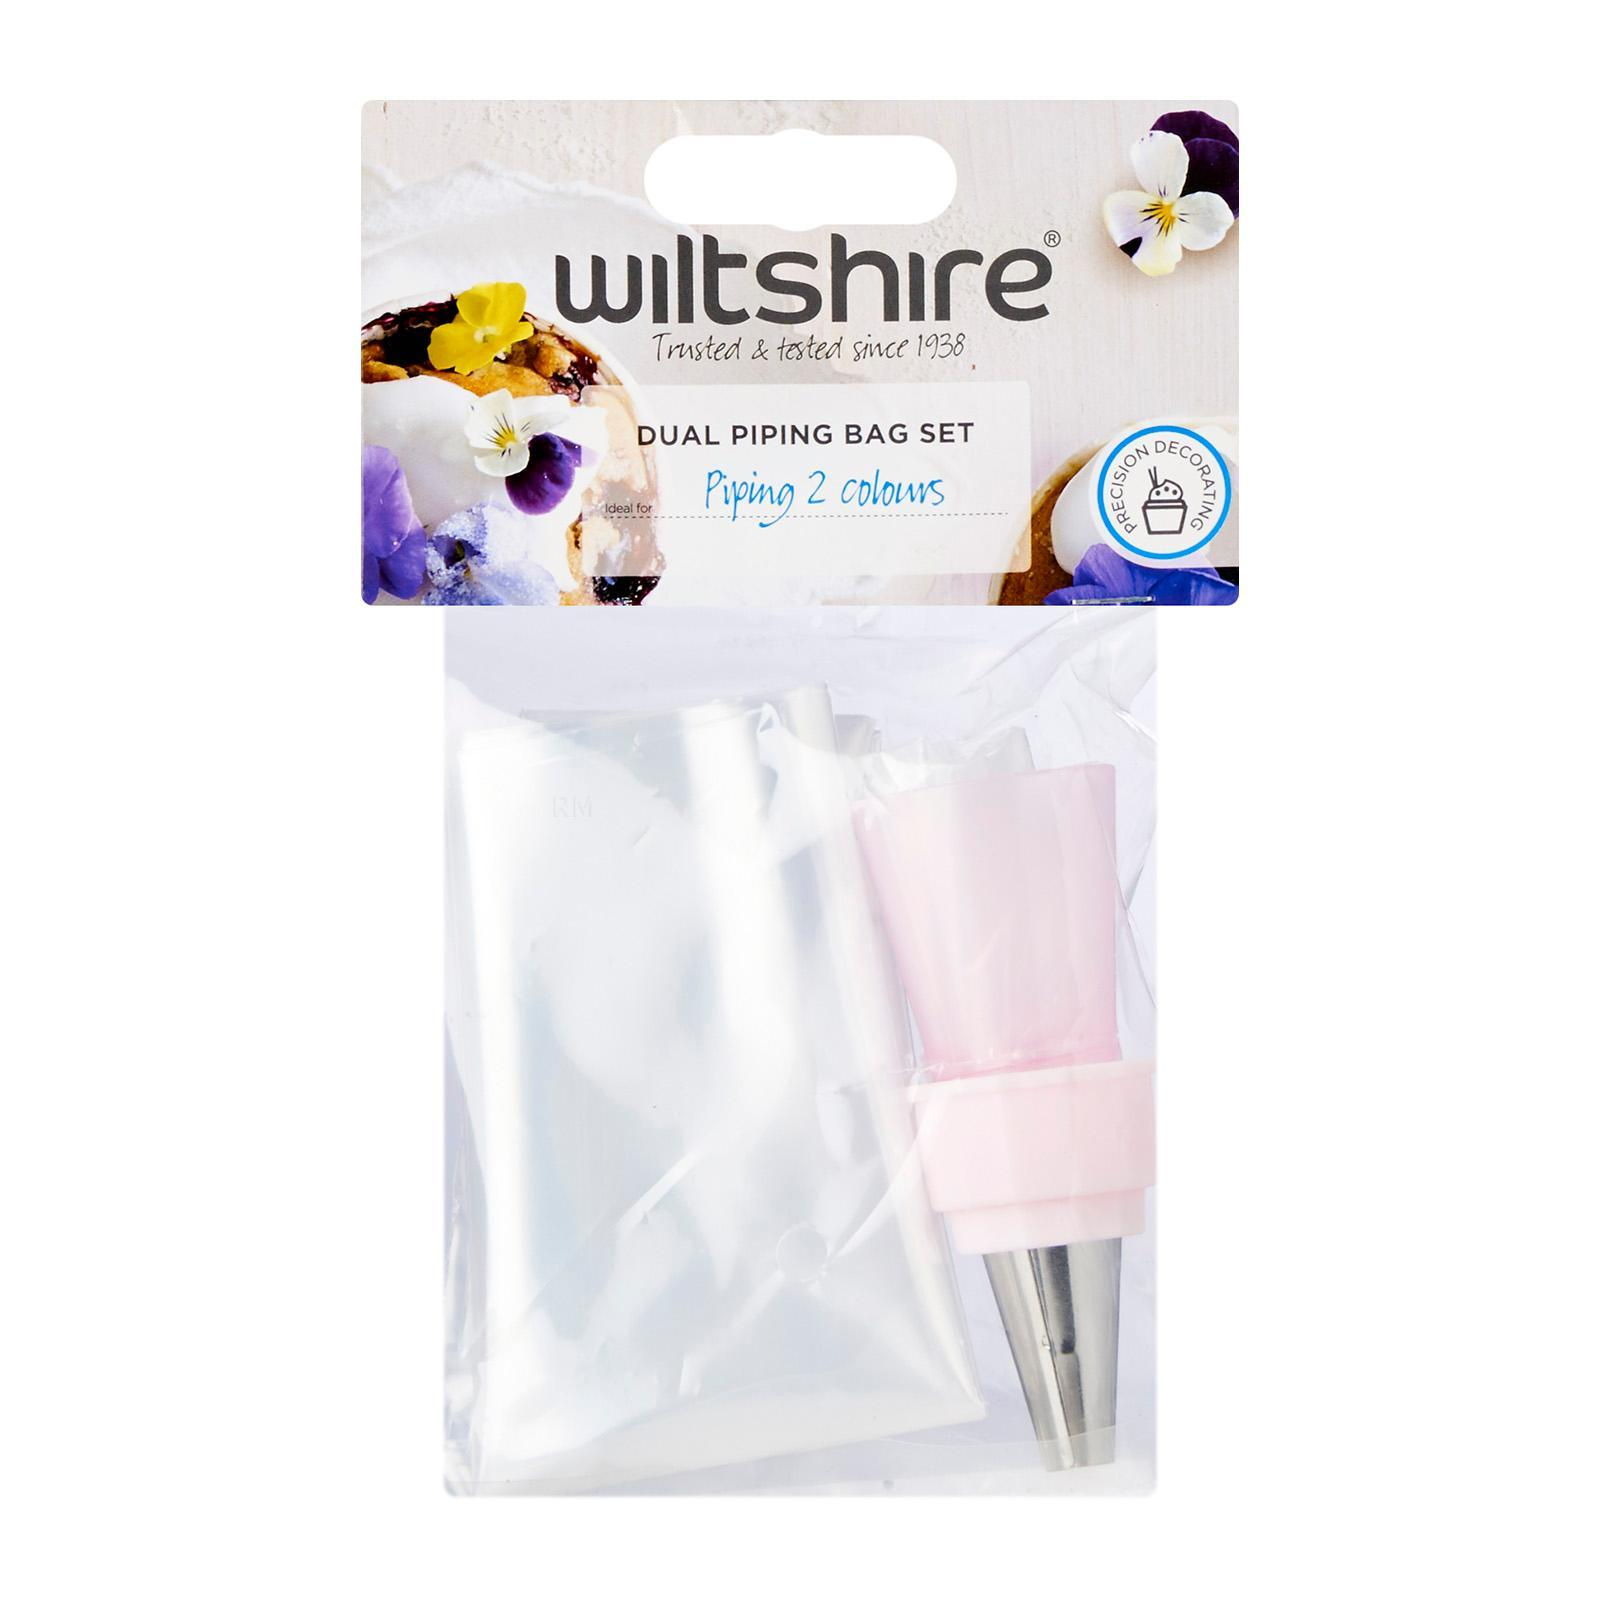 Wiltshire Dual Piping Bag Set